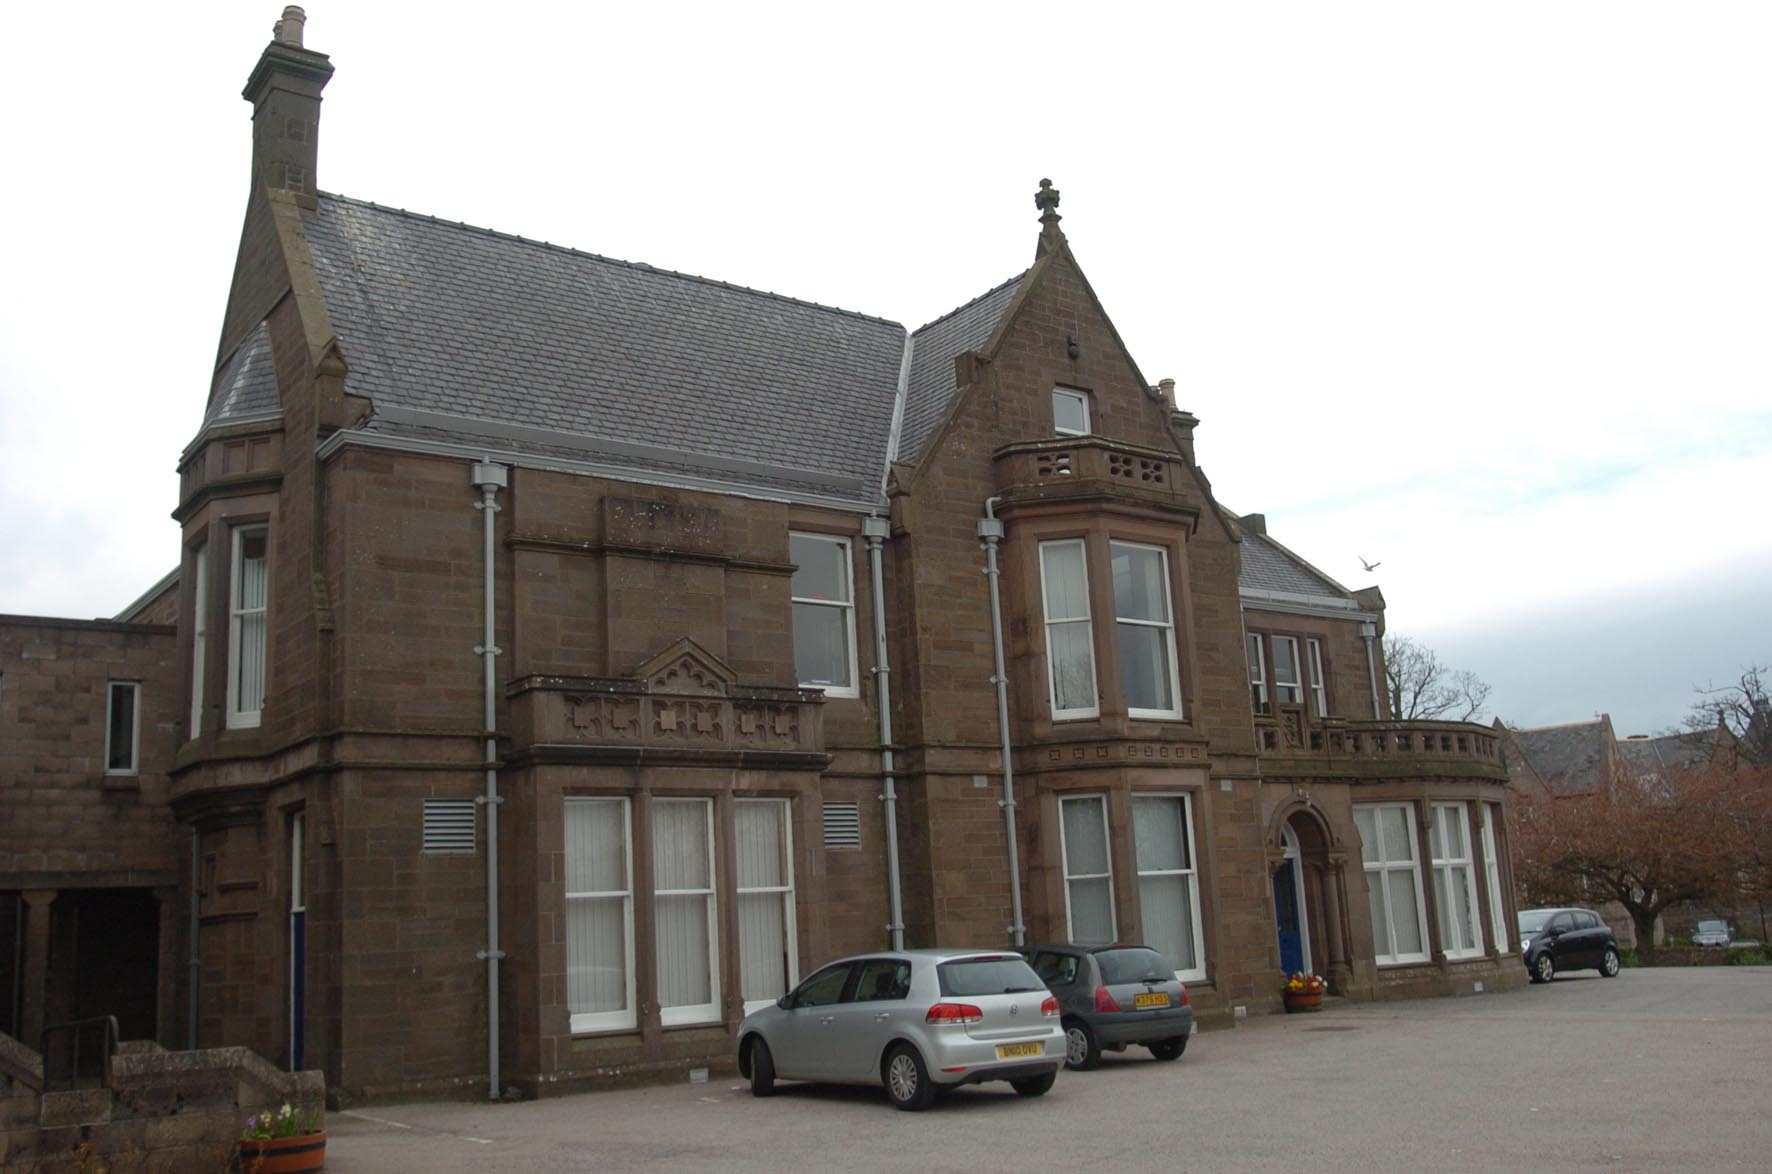 The council's Stonehaven office.